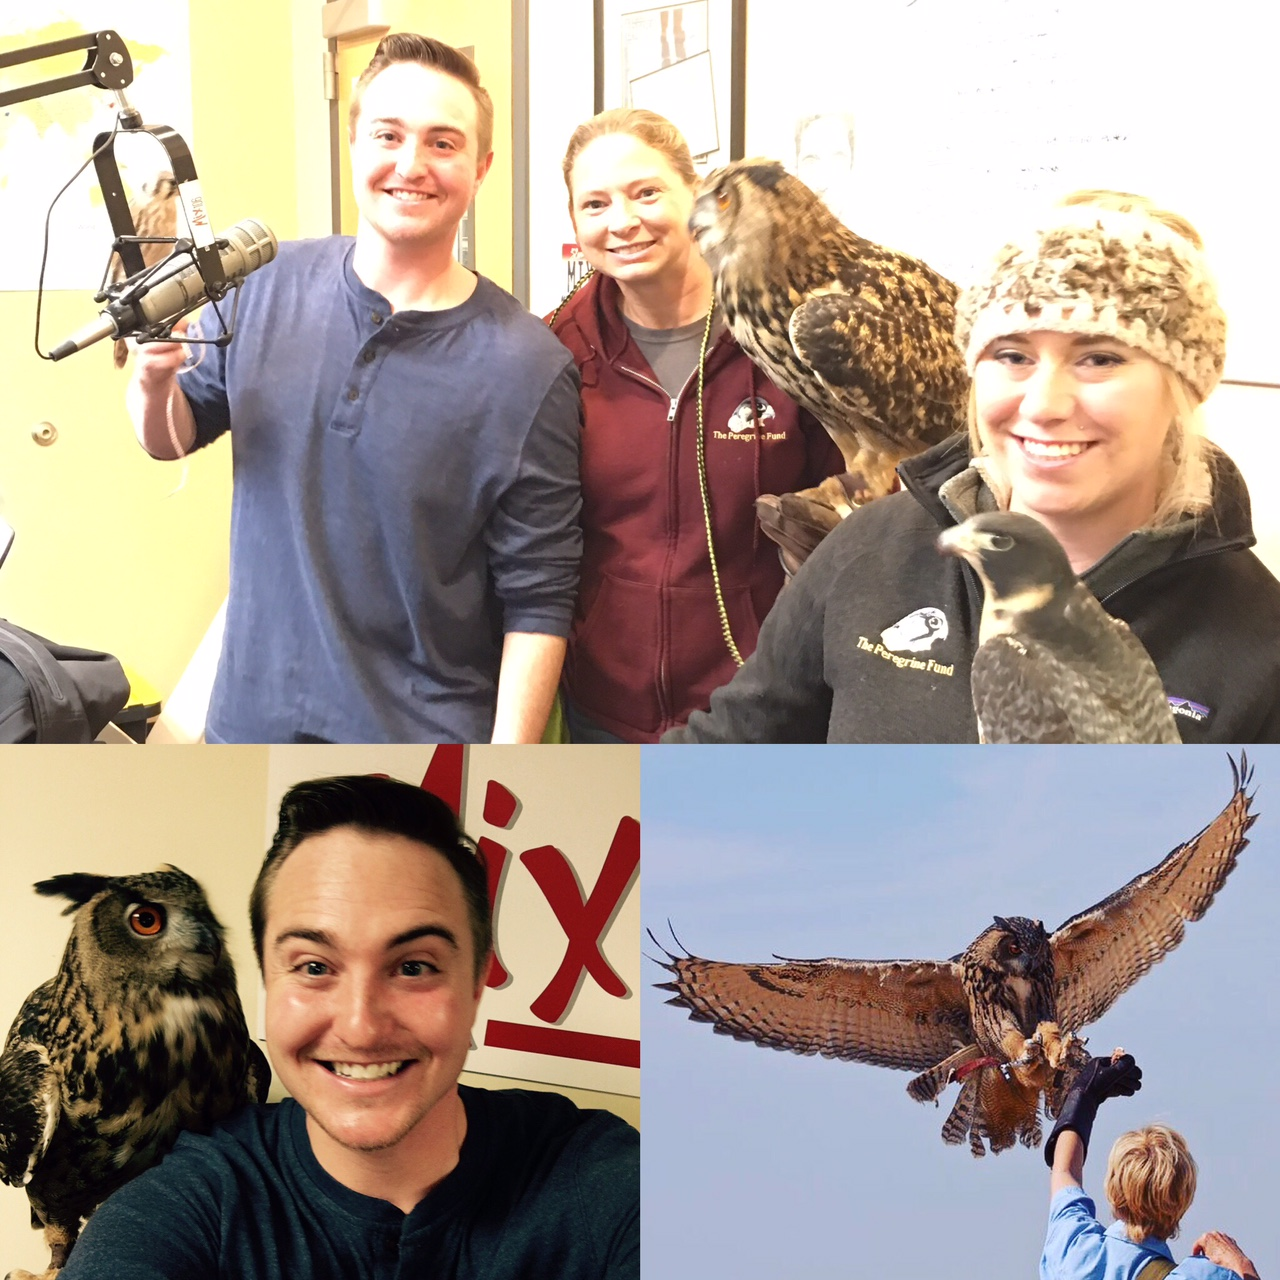 Mix 106 Radio with The Peregrine Fund and The World Center for Birds of Prey.